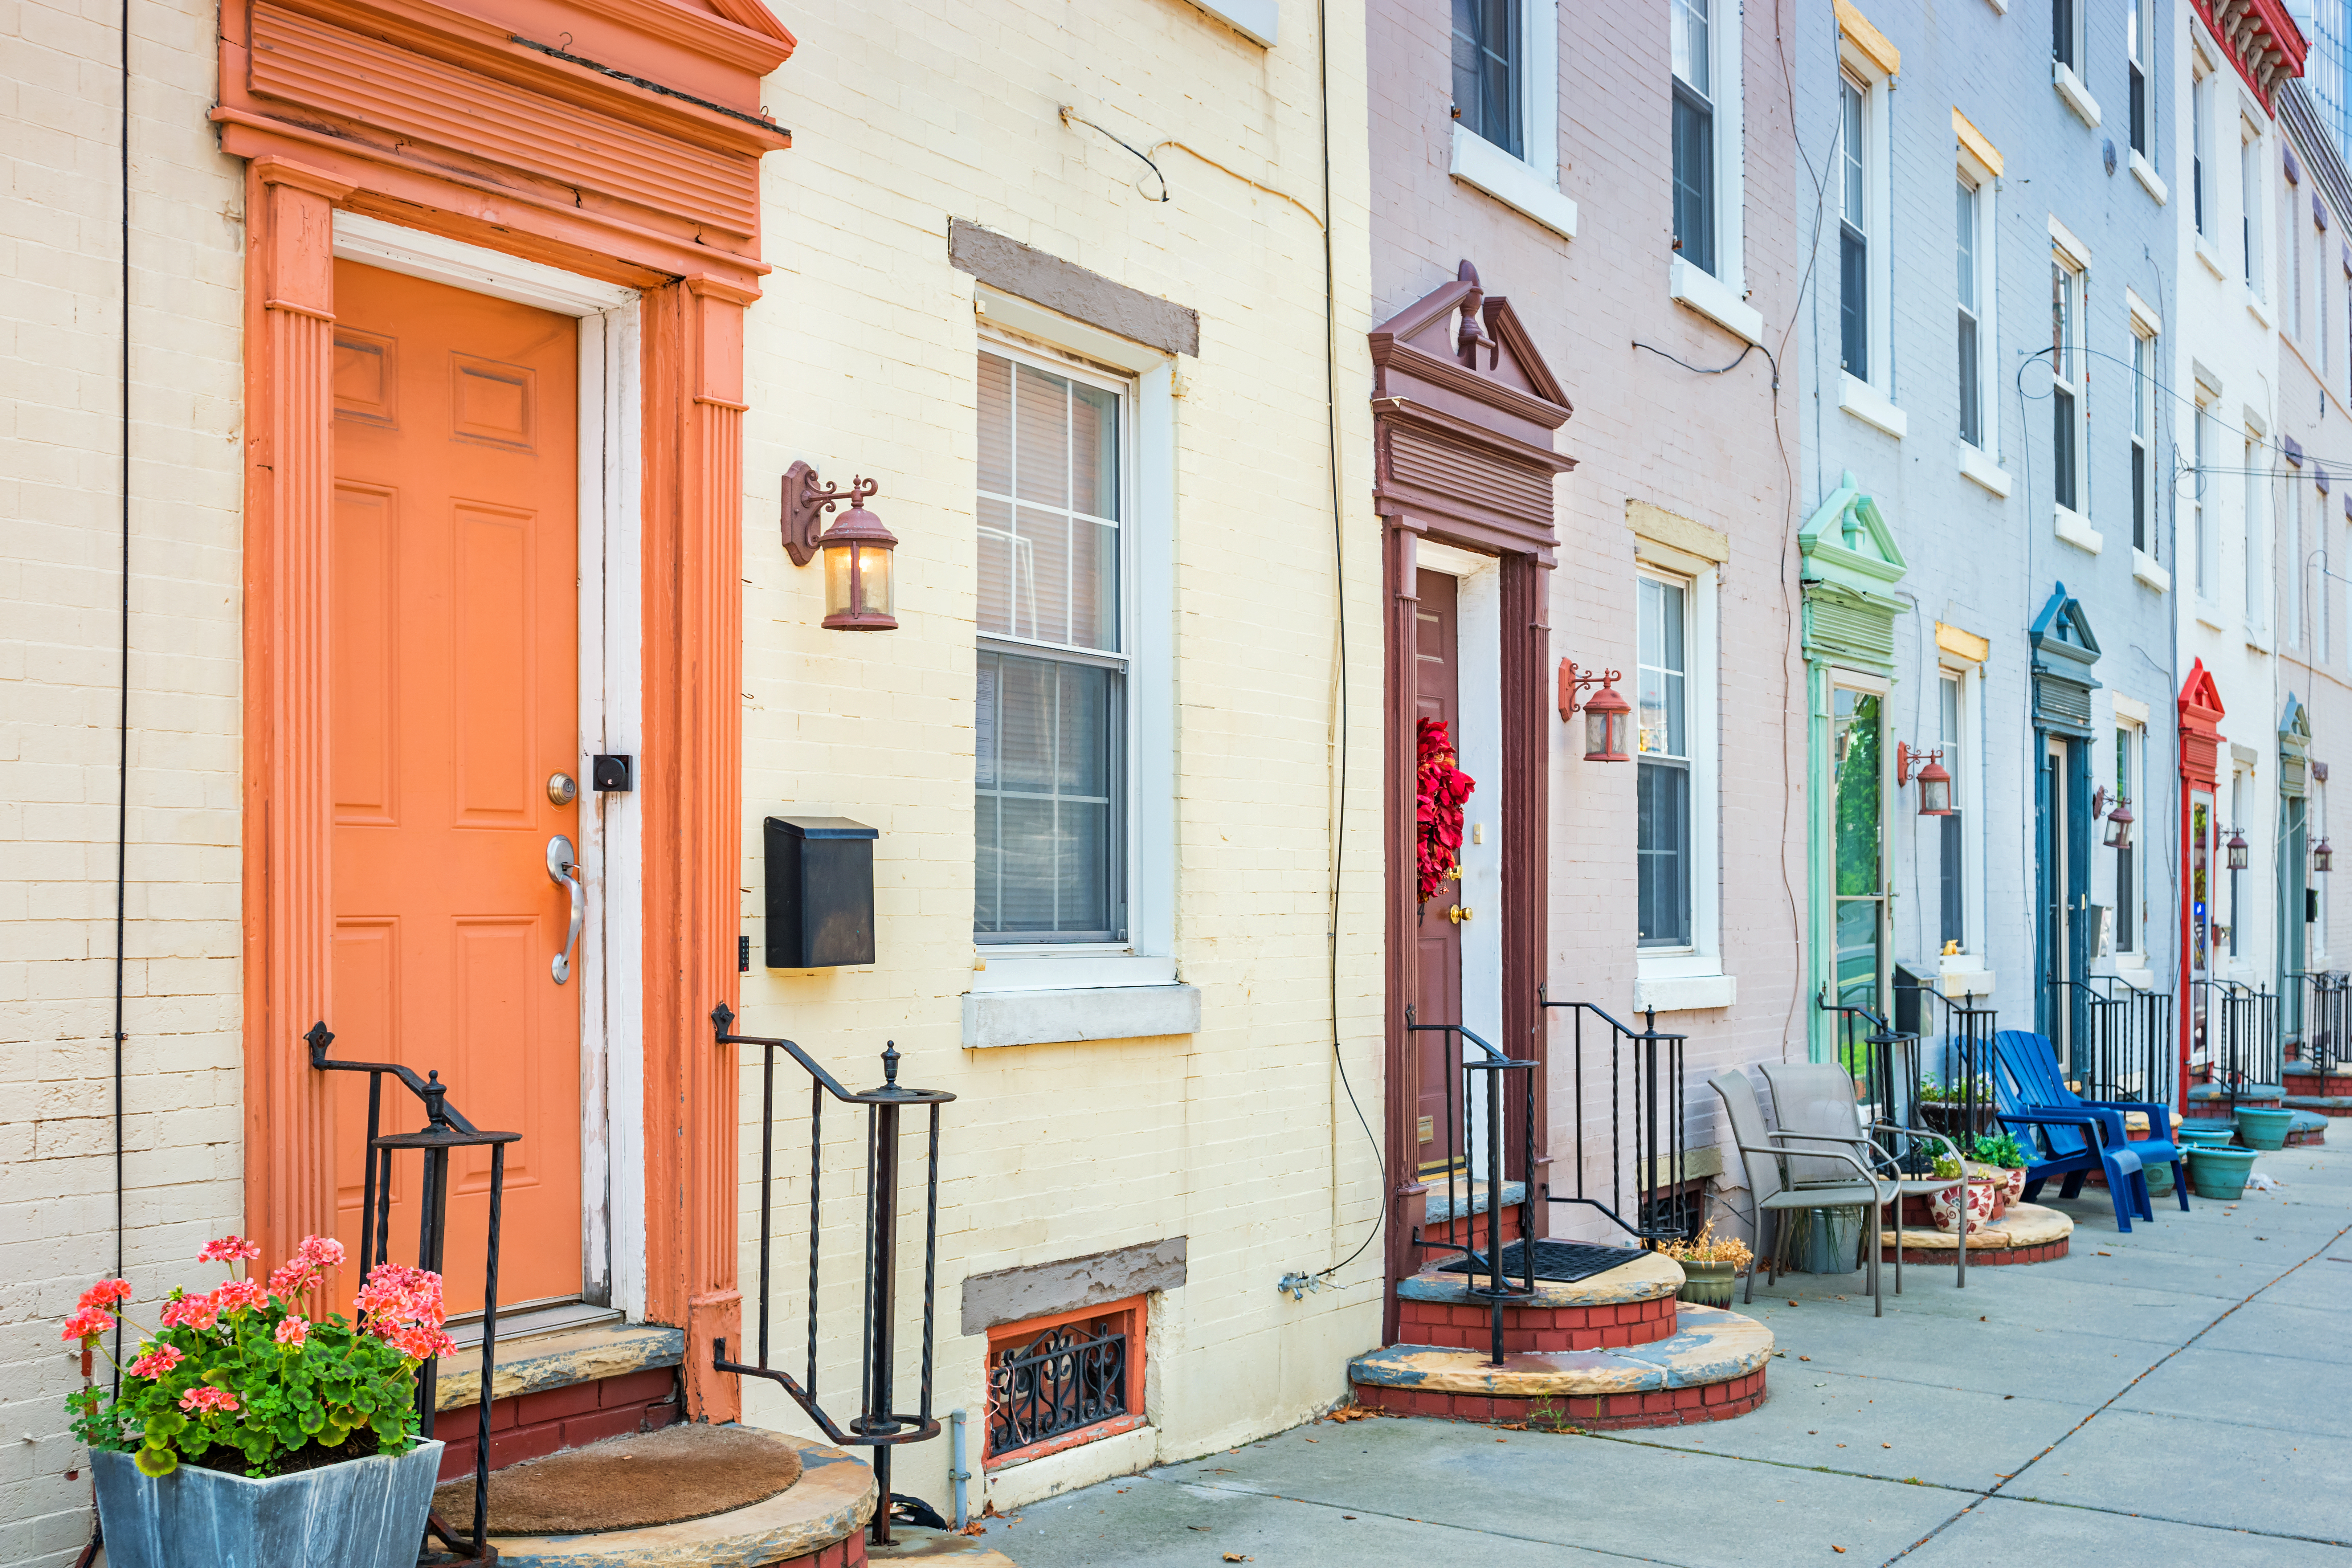 Townhouses in downtown Philadelphia Pennsylvania USA